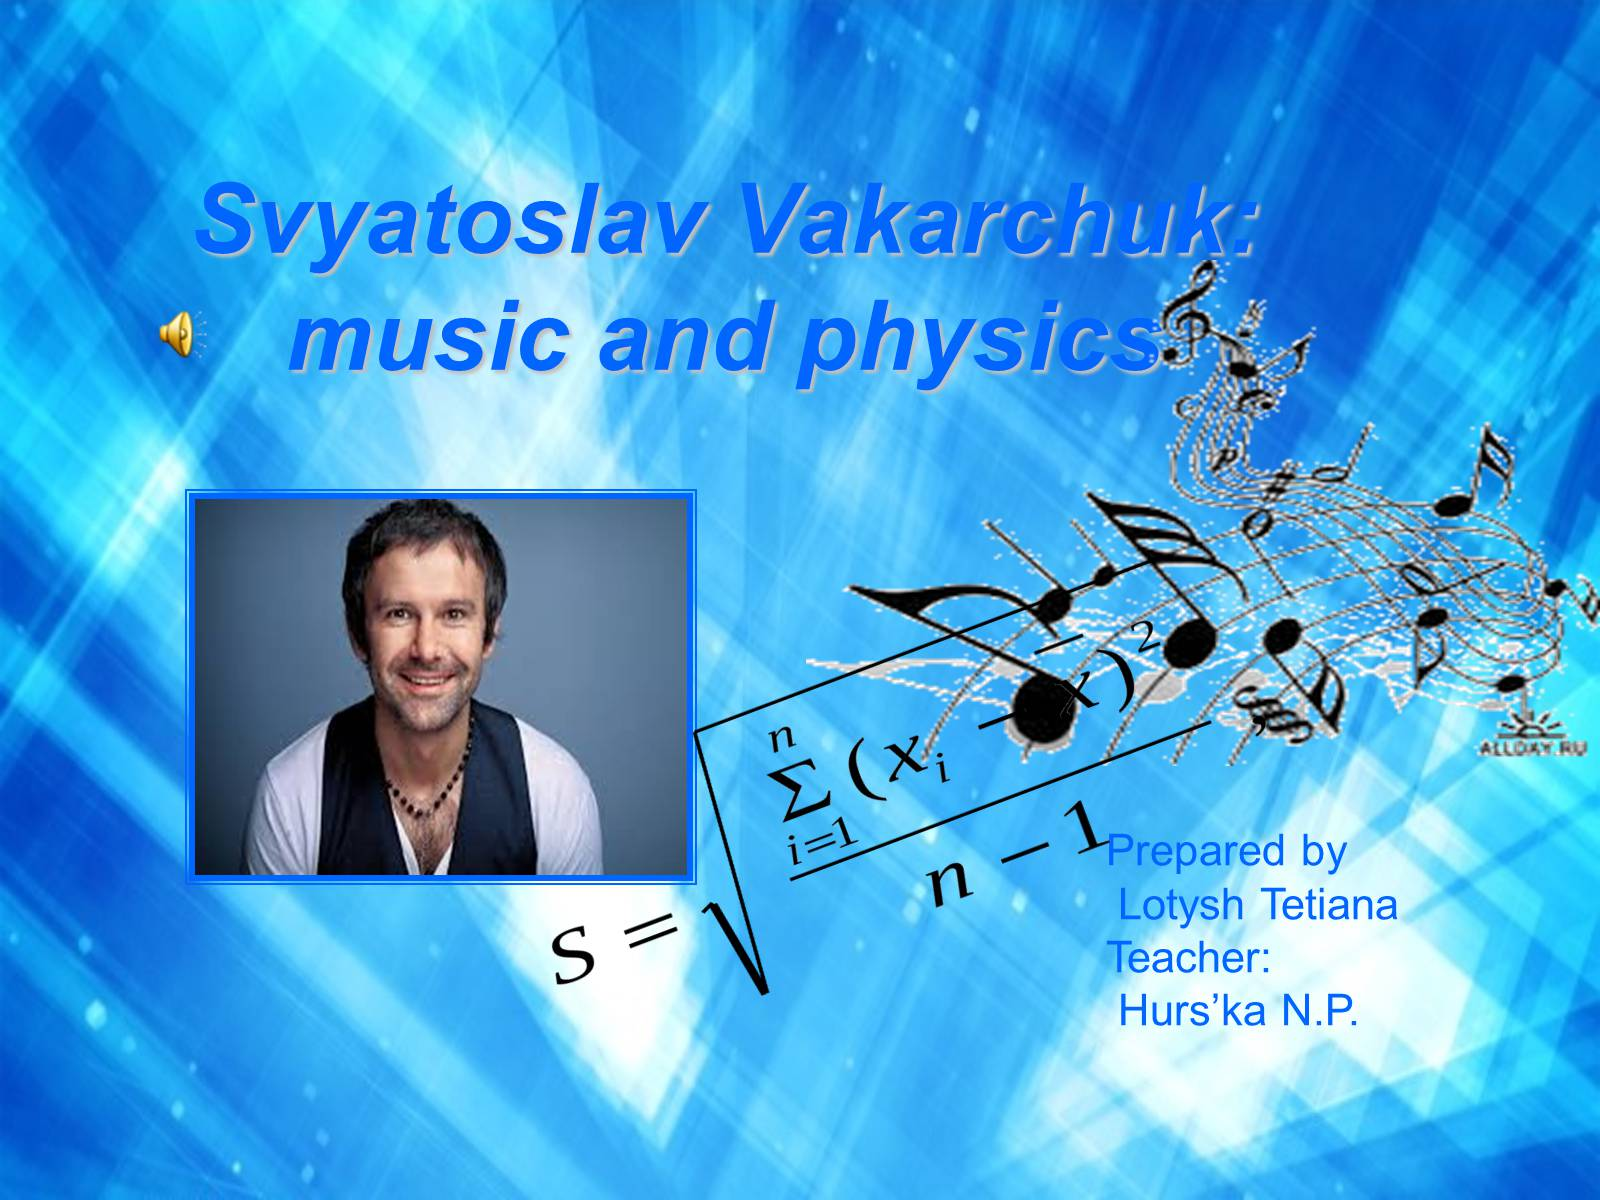 Презентація на тему «Svyatoslav Vakarchuk: music and physics»